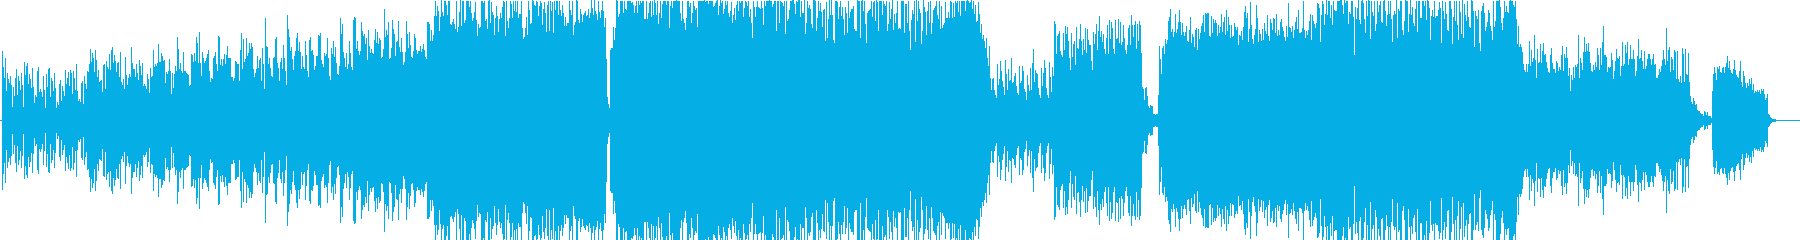 Positive and Inspiring Violin Company VP etc's reproduced waveform